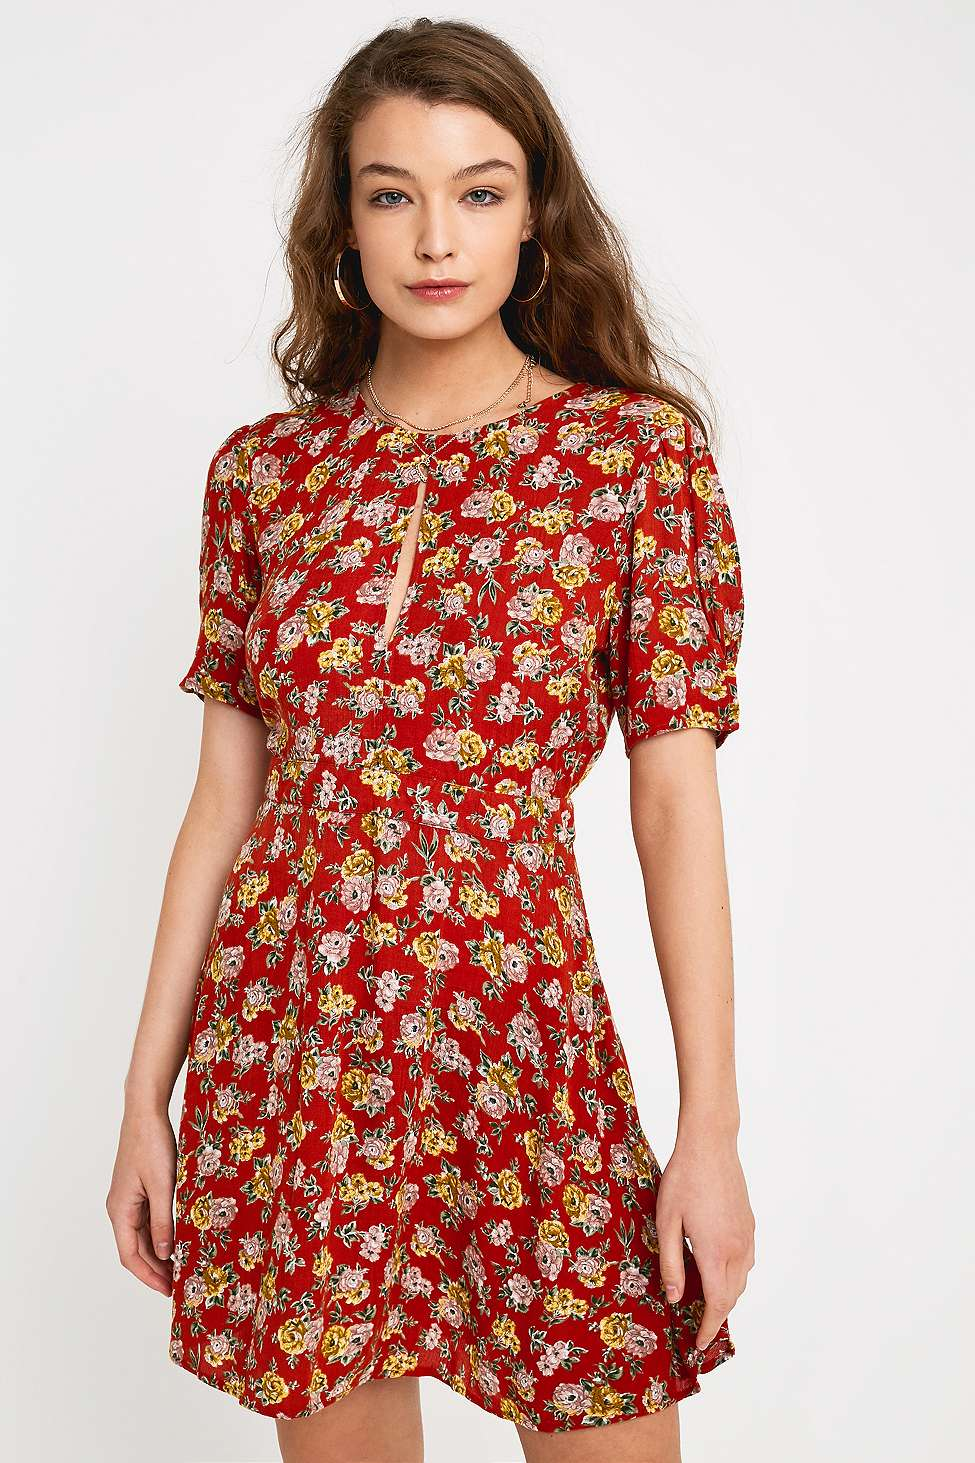 Uo   Robe Liquette Courte à Fleurs Rouge by Urban Outfitters